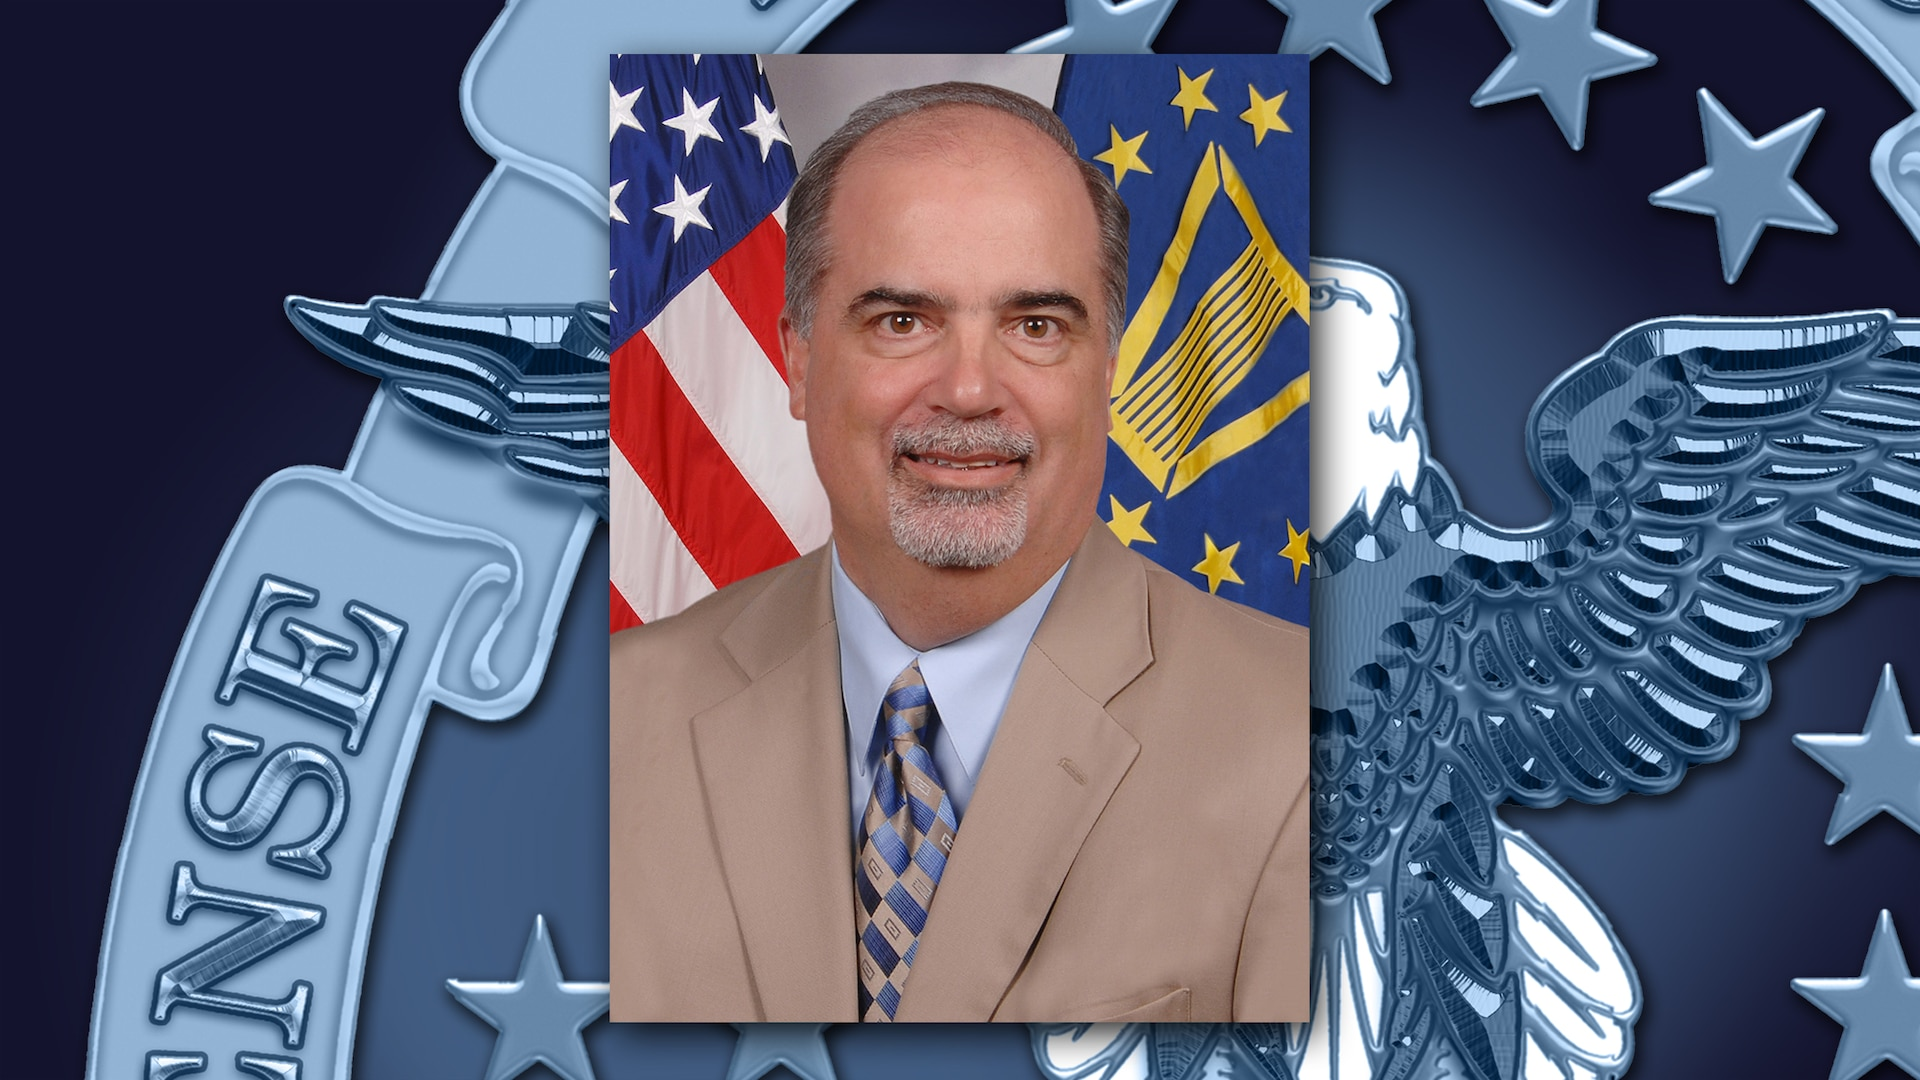 A portrait of Tony Poleo on a background featuring a portion of the DLA emblem